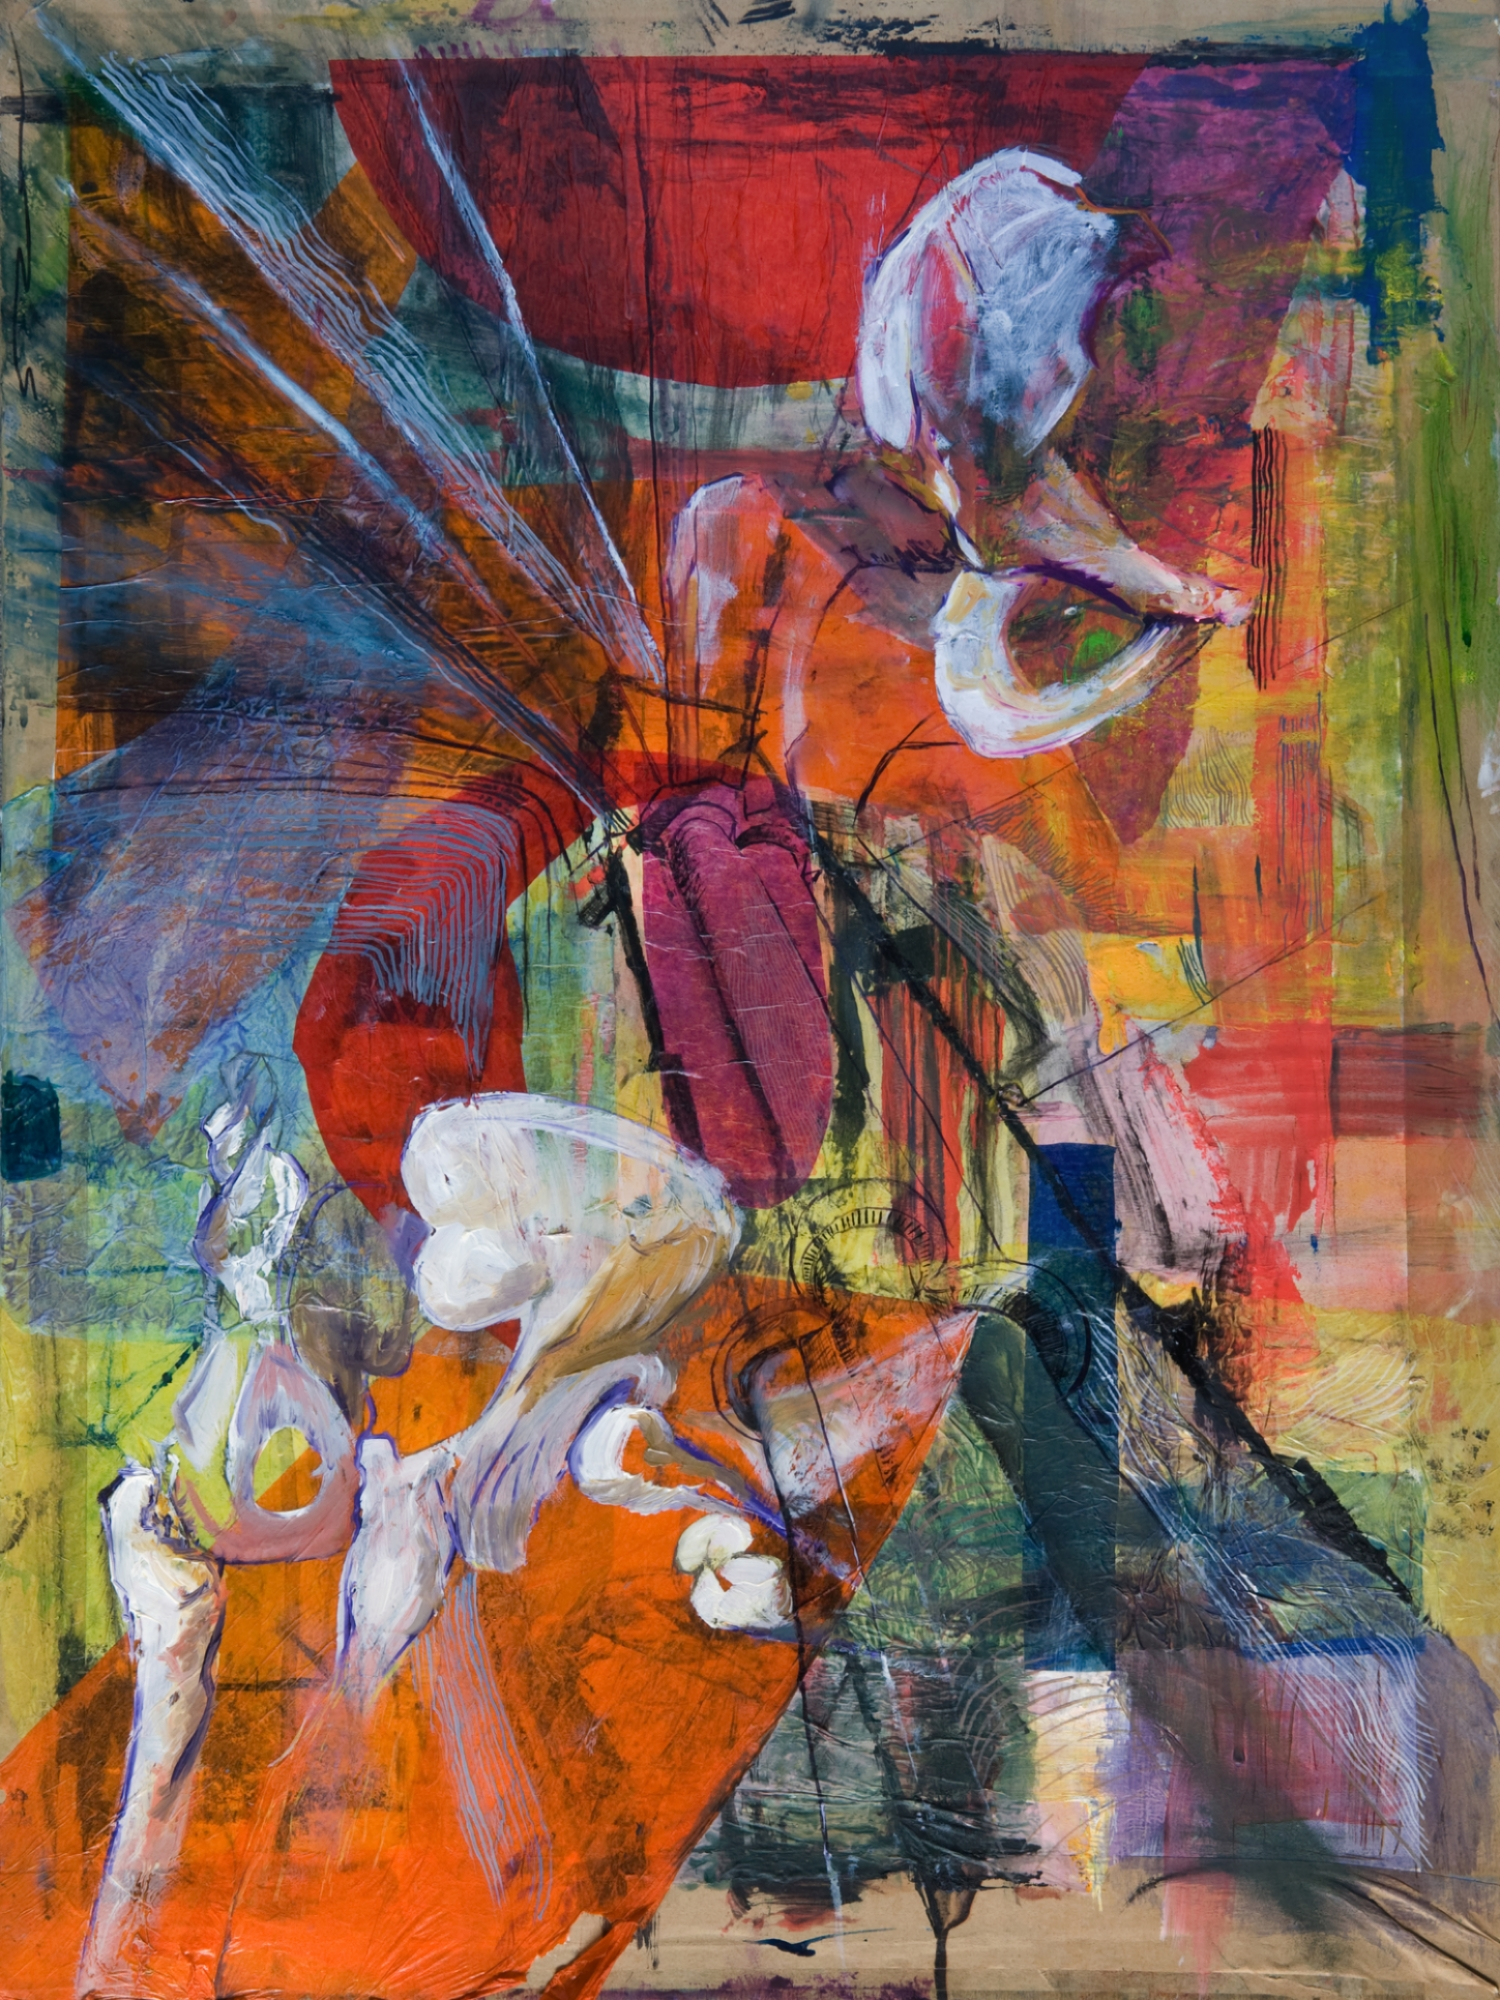 Acetabulofemoral Architecture, mixed media on board, 24in x 16inA